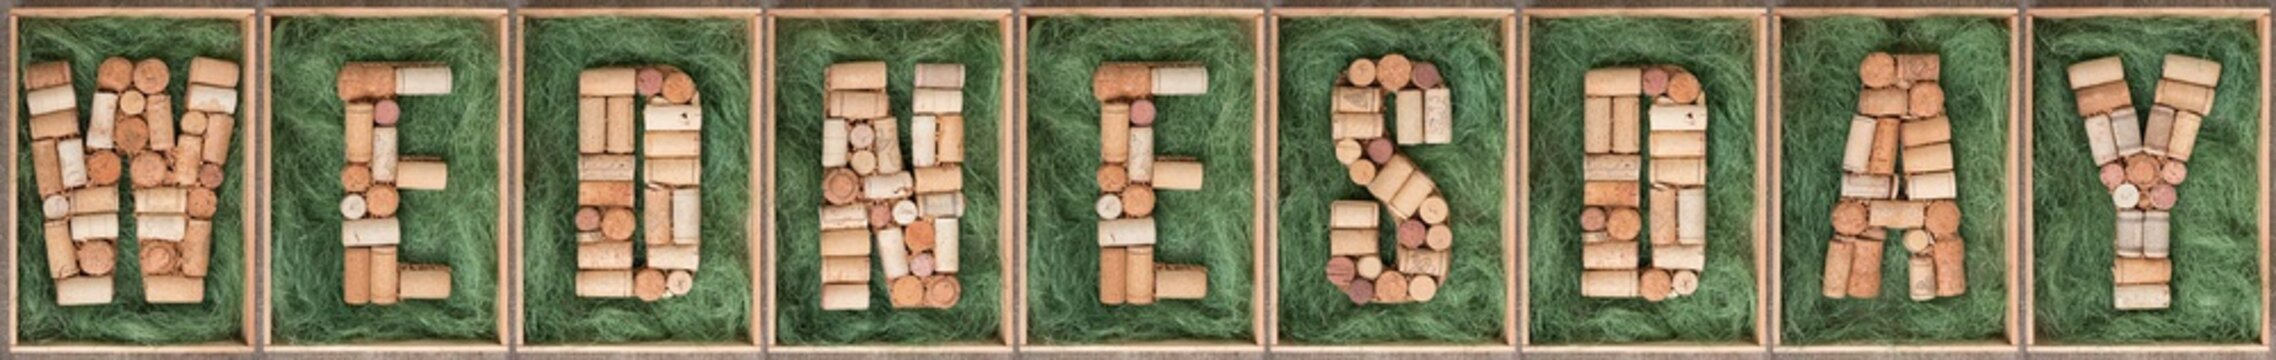 Word Wednesday made of wine corks on green background in wooden box